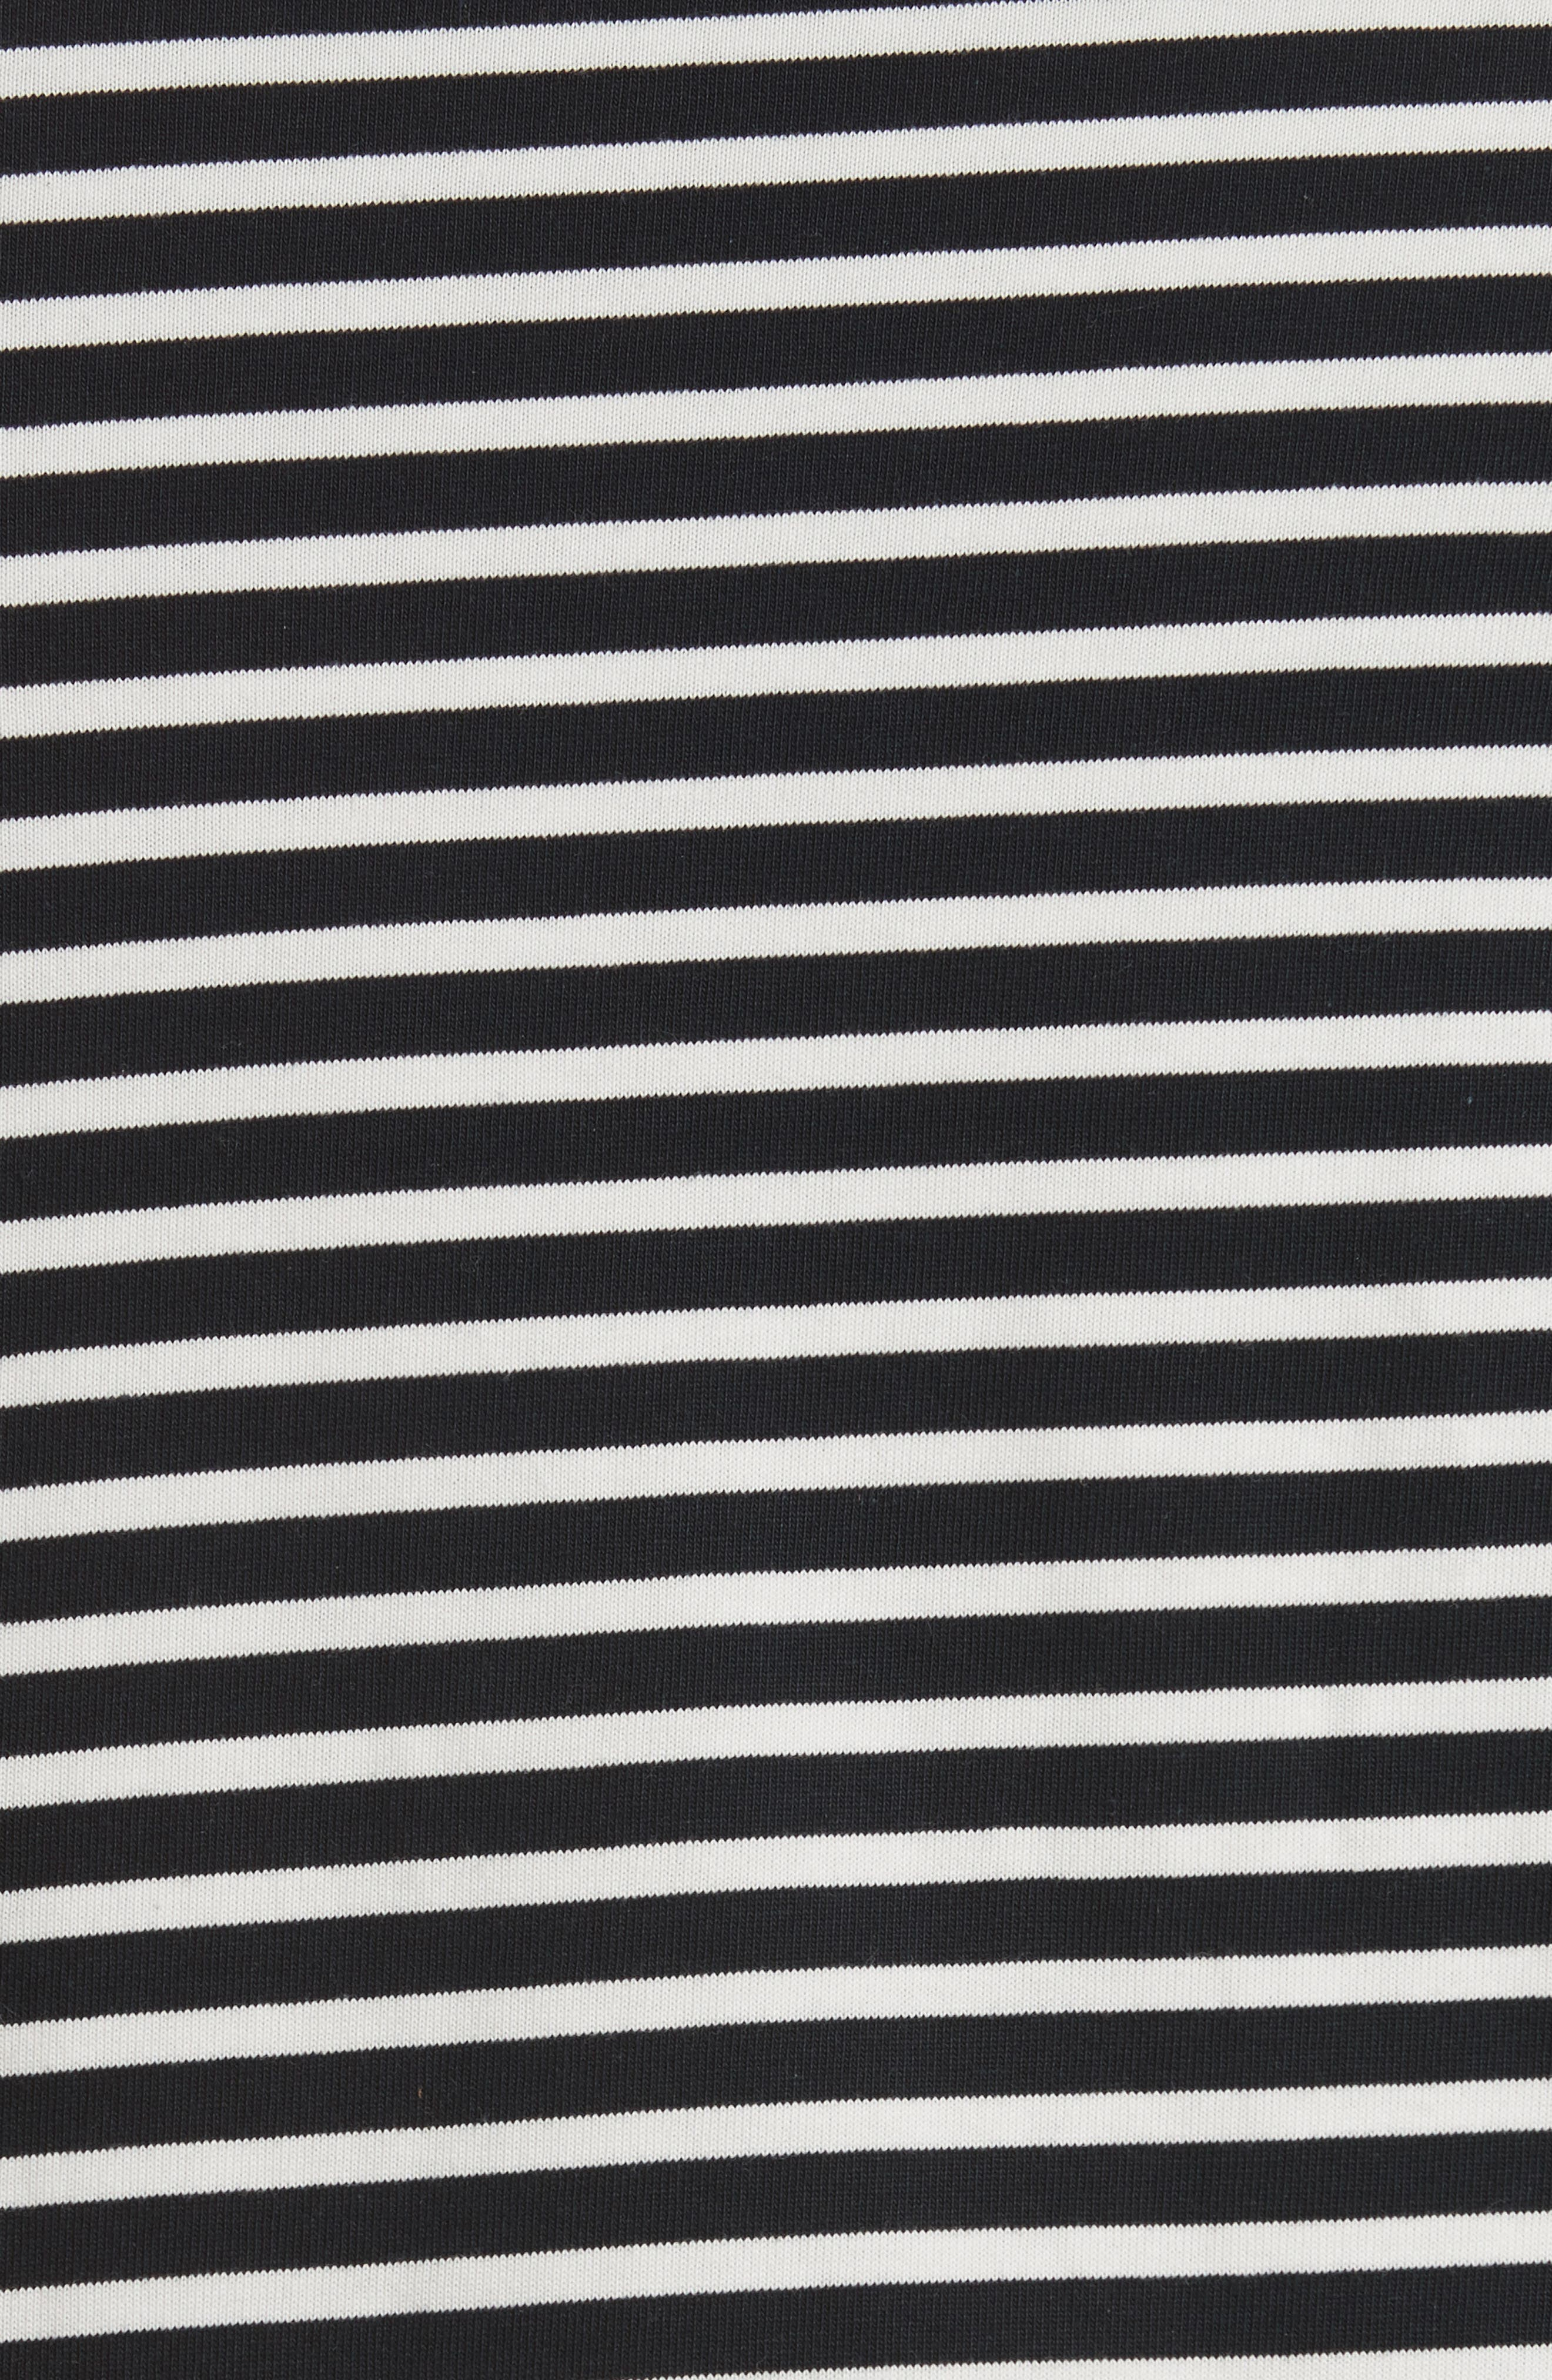 Stripe Long Sleeve T-Shirt,                             Alternate thumbnail 5, color,